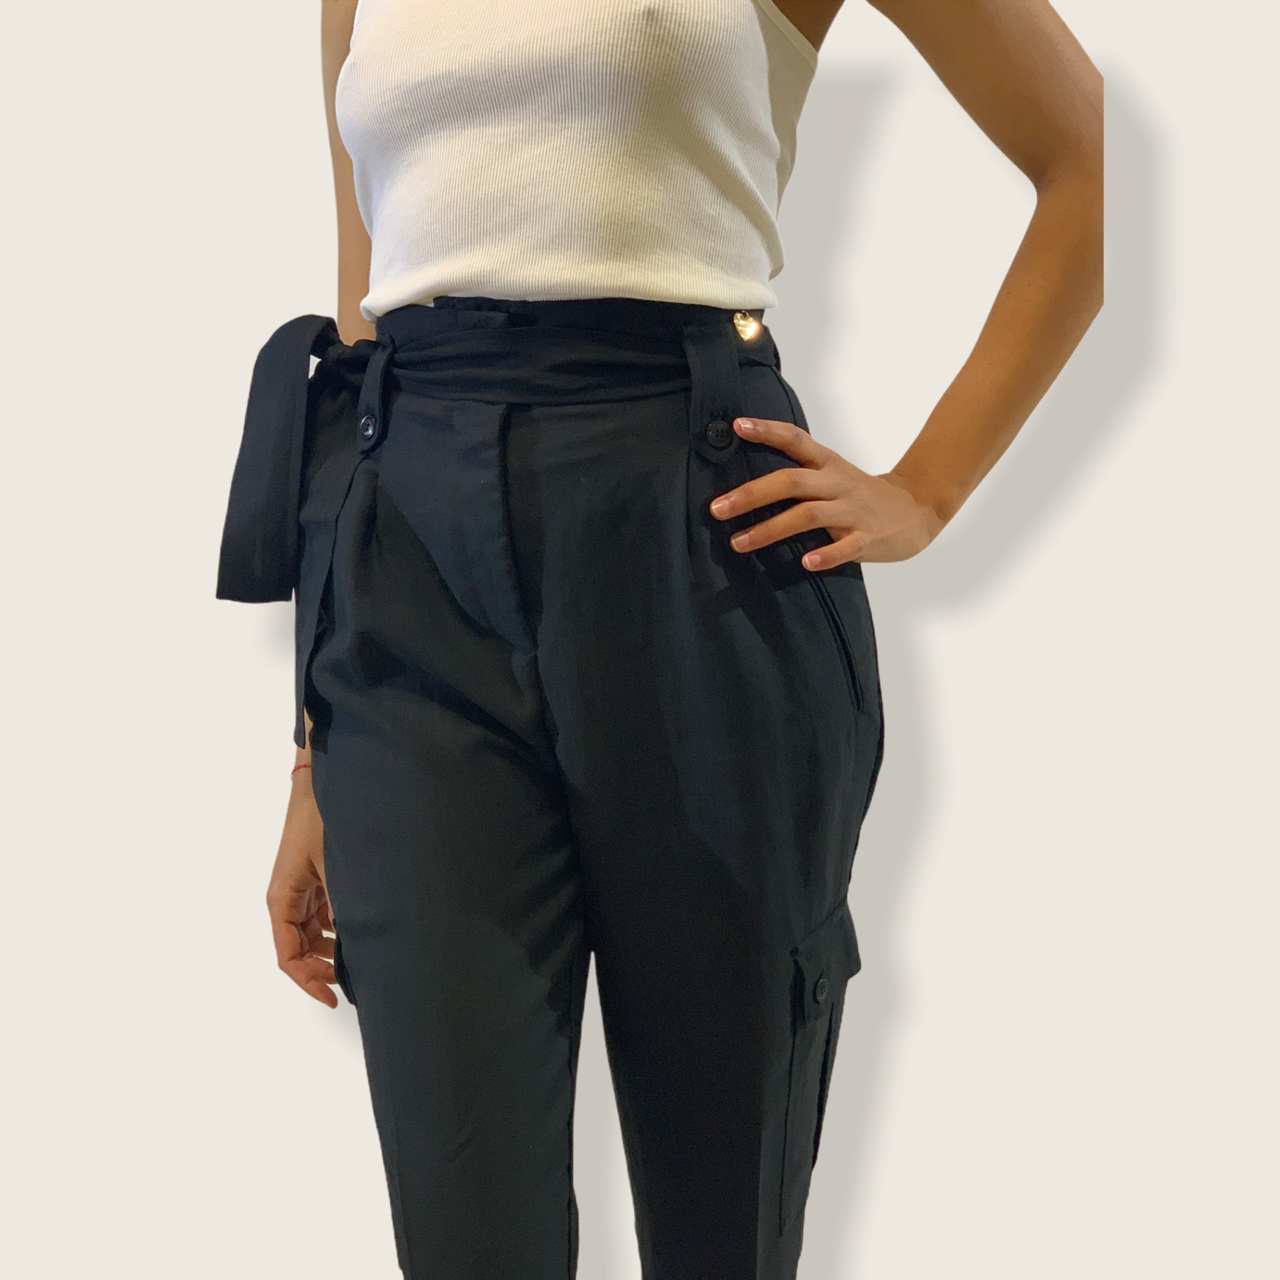 SHOPPING ON LINE TWINSET MILANO PANTALONI CARGO NEW COLLECTION WOMEN'S SPRING SUMMER 2021